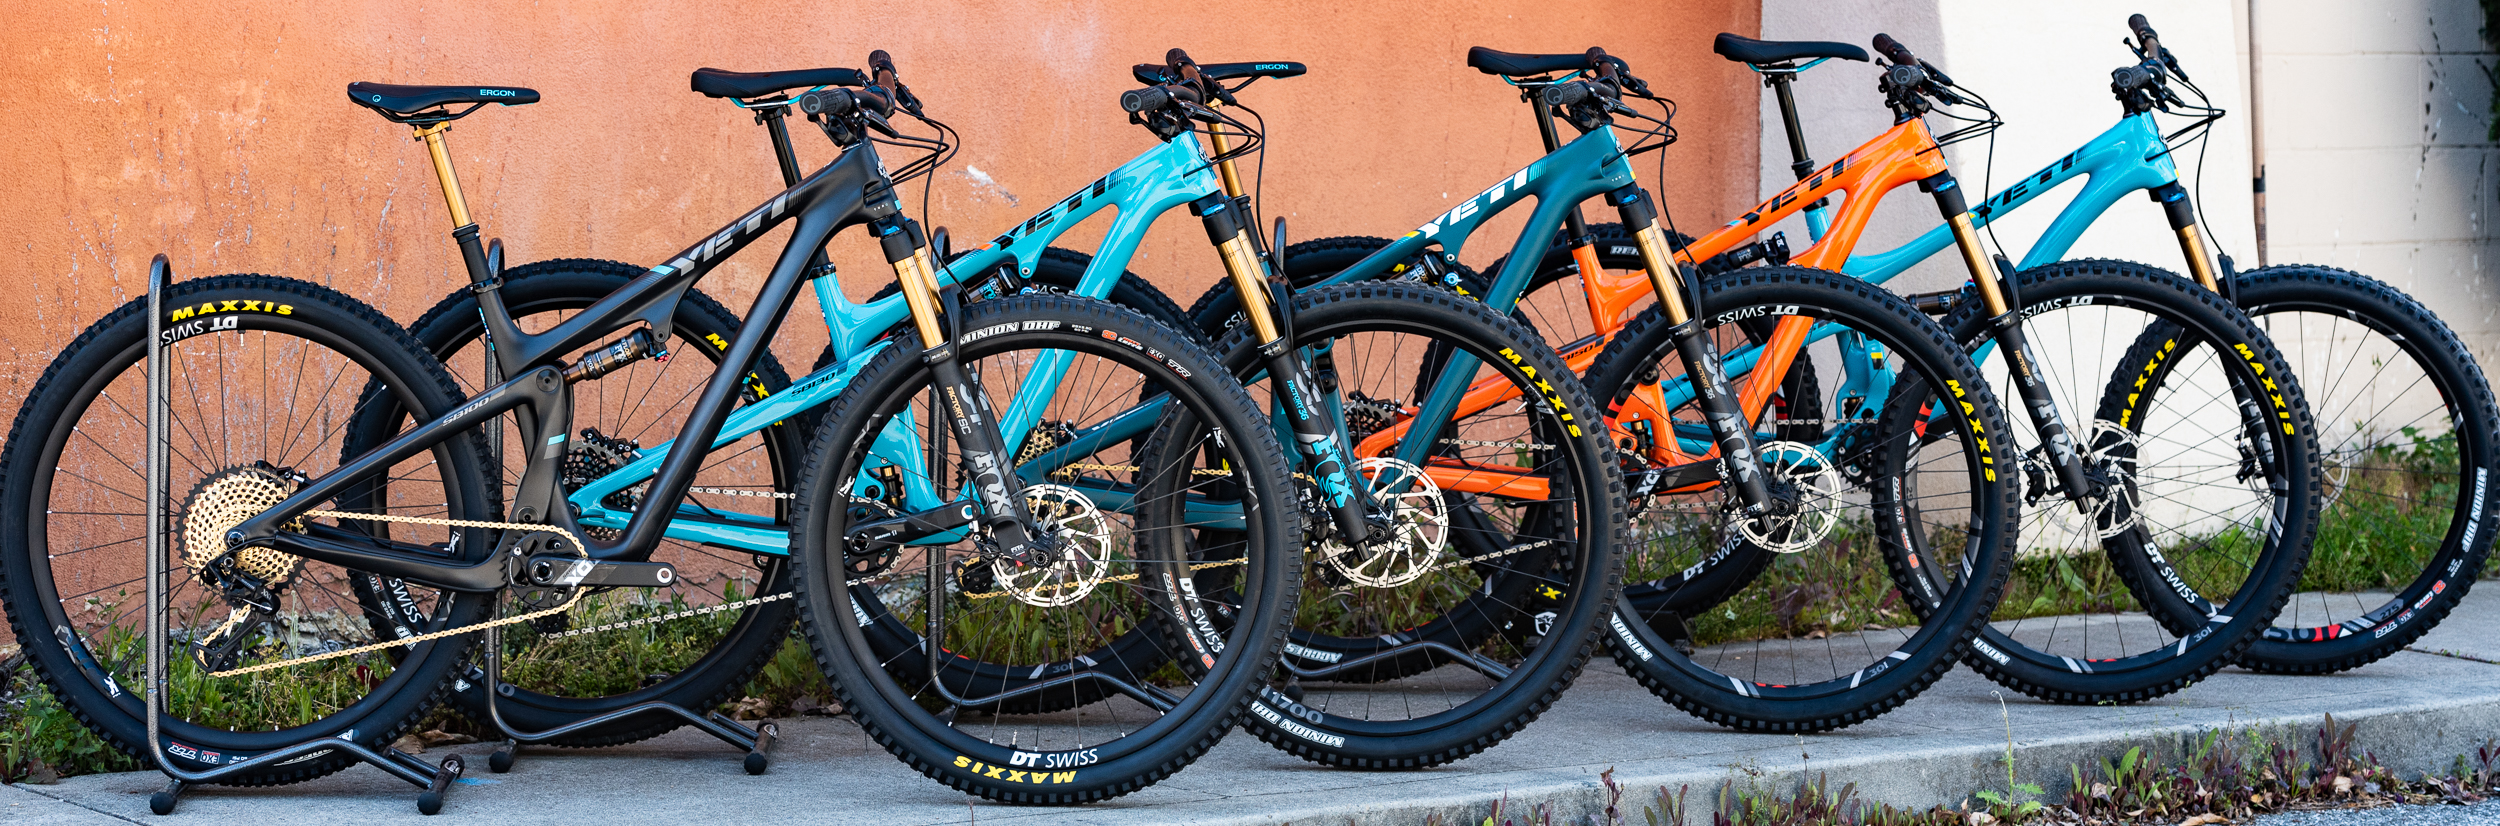 Trail.Head.Cyclery.2019-7362.jpg